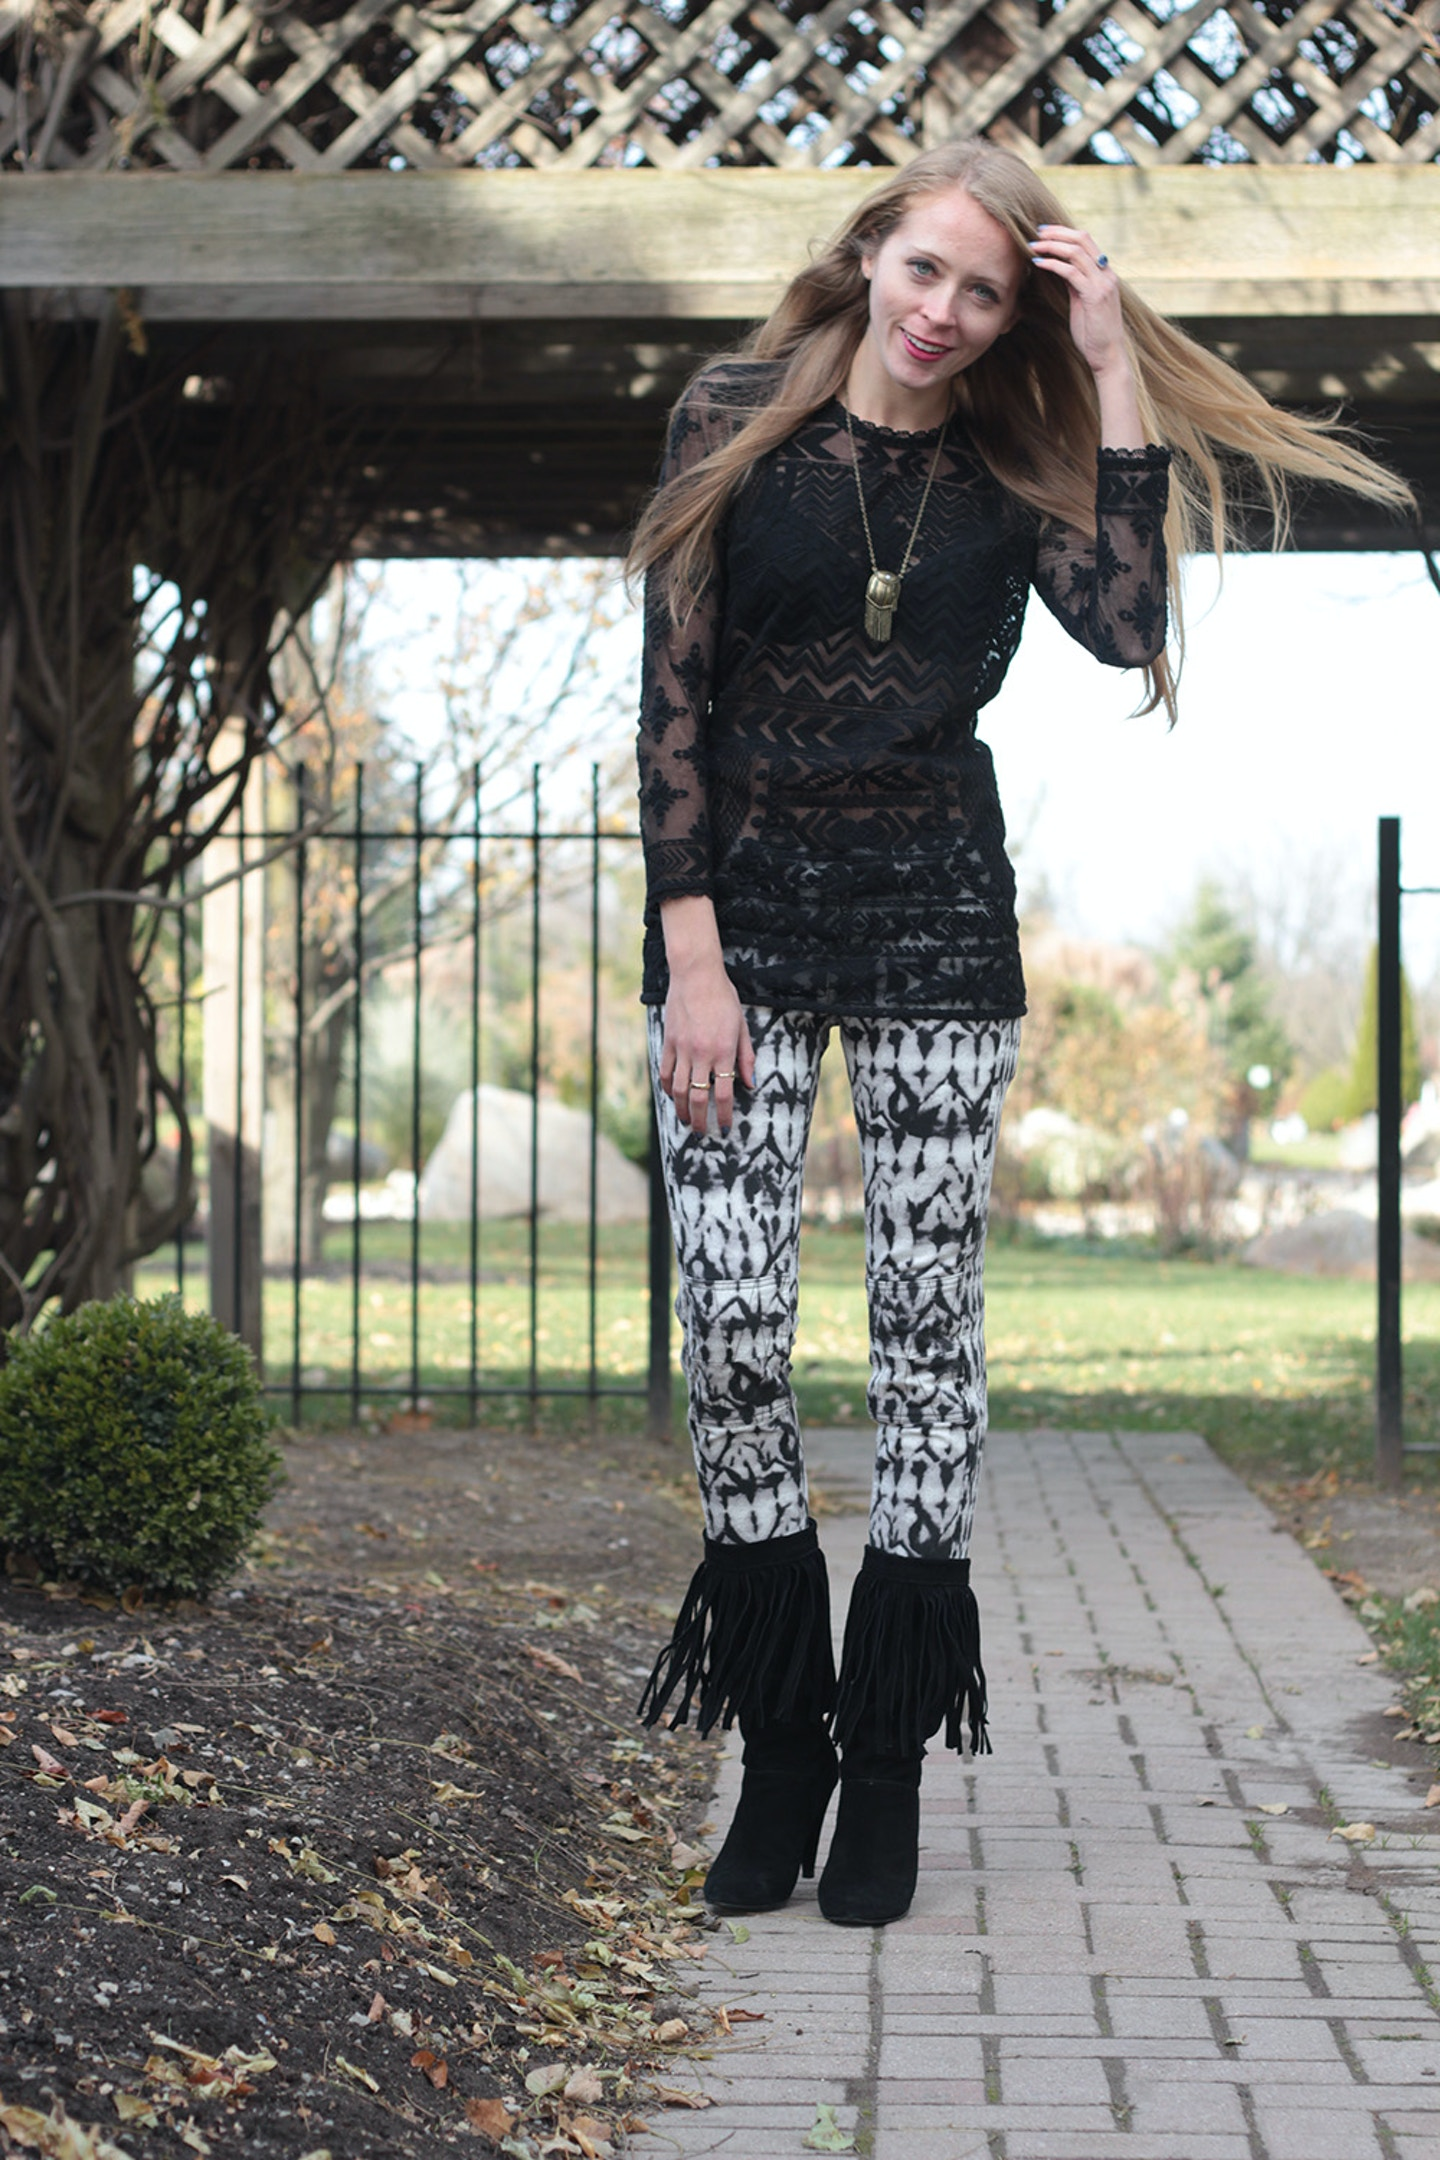 Isabel Marant for H&M: How I styled it